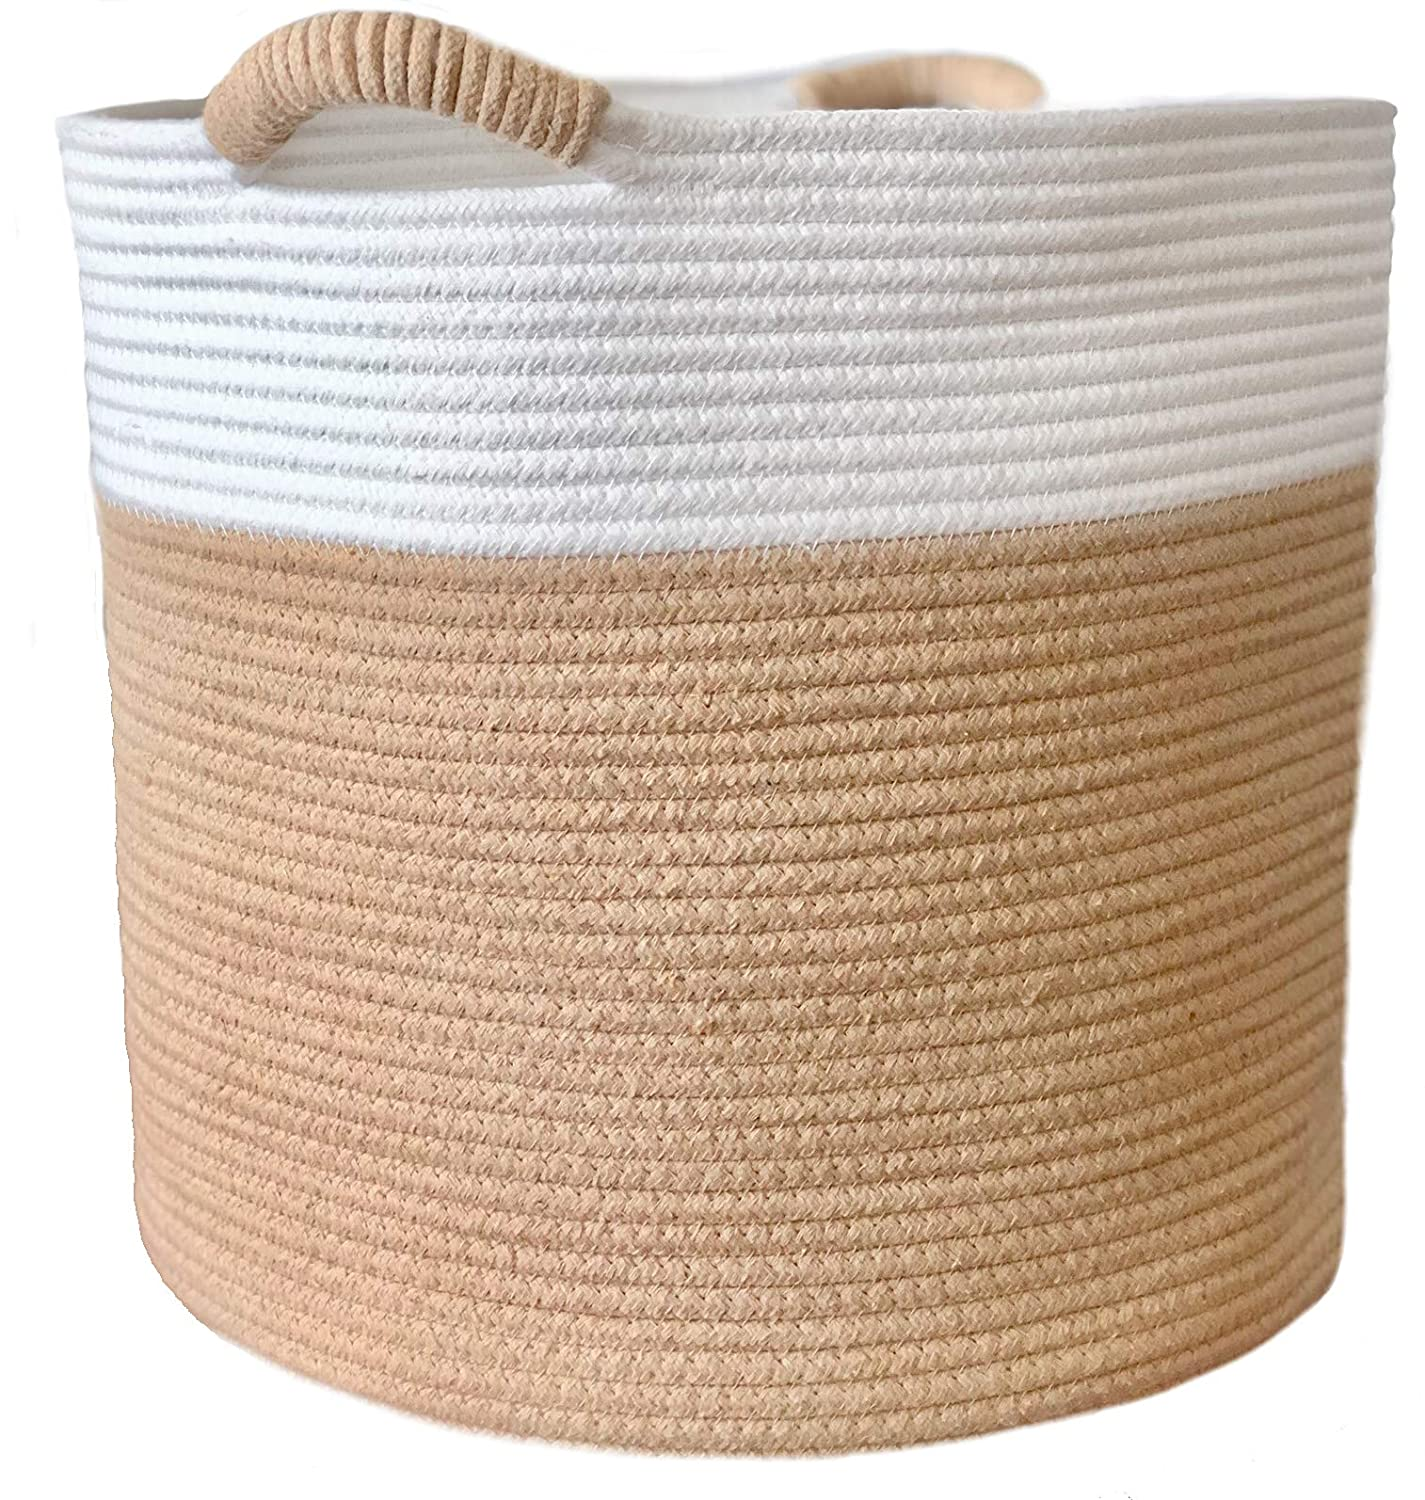 "Woven Cotton Rope Storage Basket with Handles |Large 15""x15""x14"" Organic Nursery Hamper